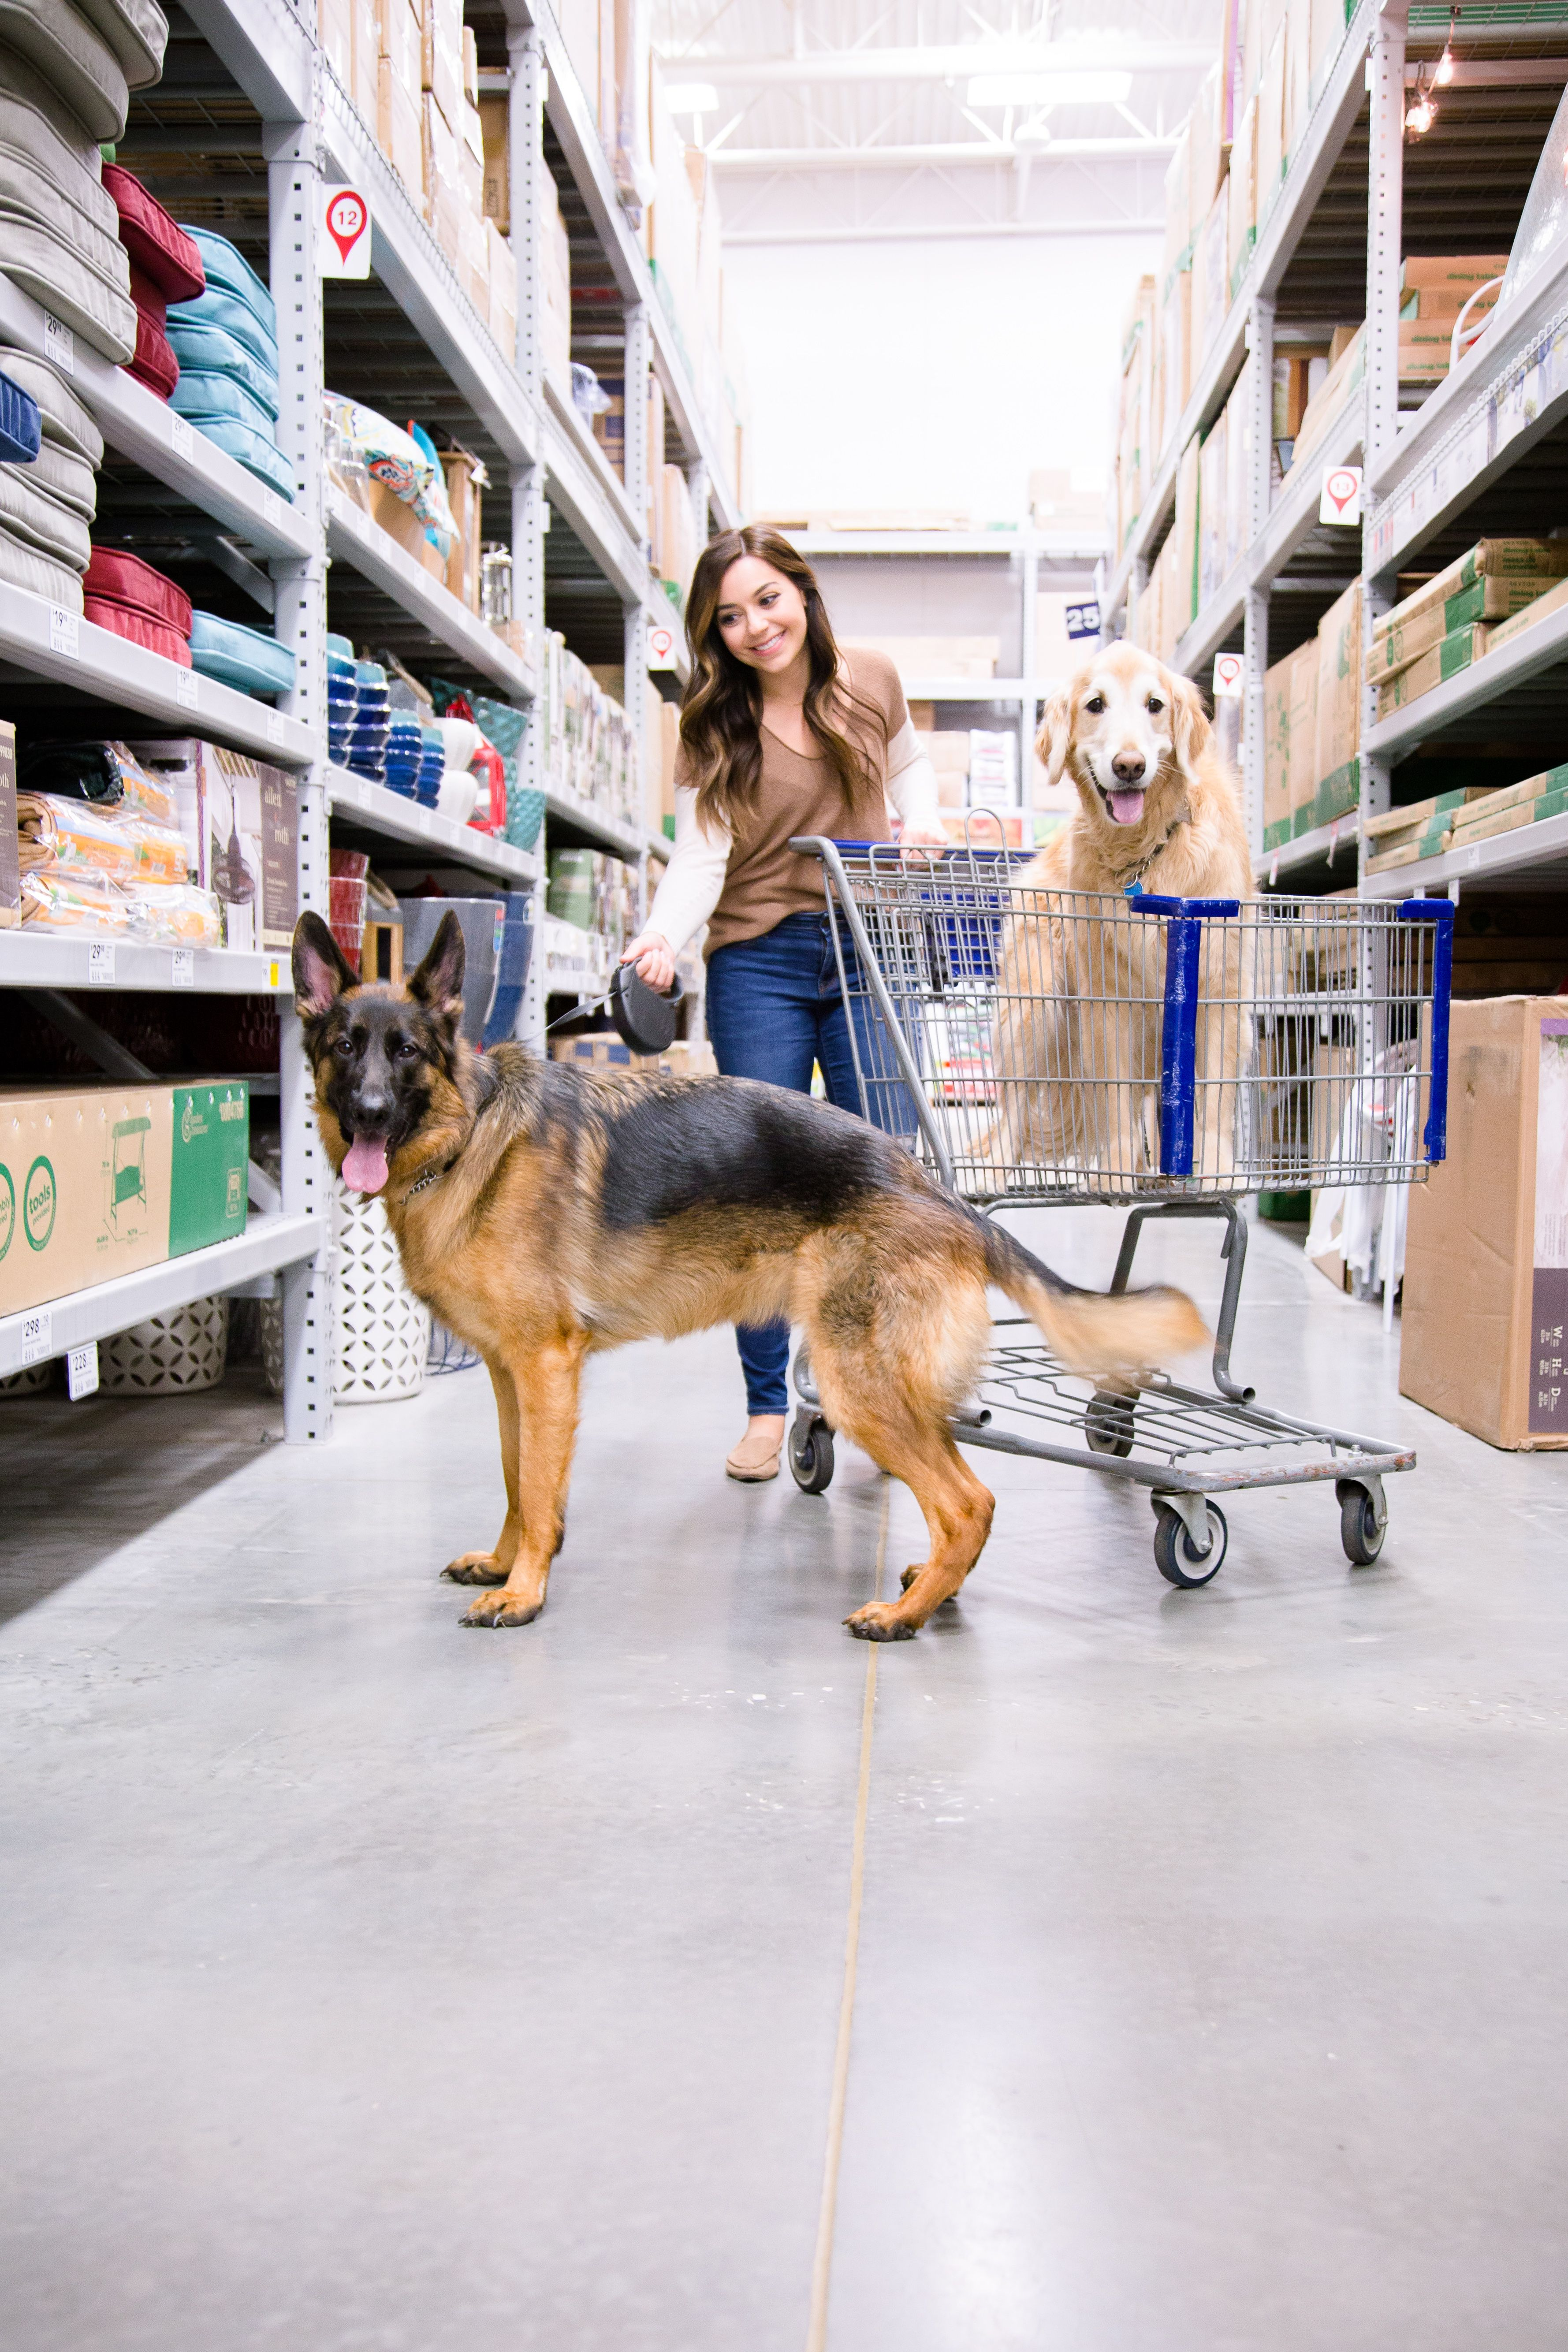 44 Dog-Friendly Stores That Allow You To Shop With Your Pet